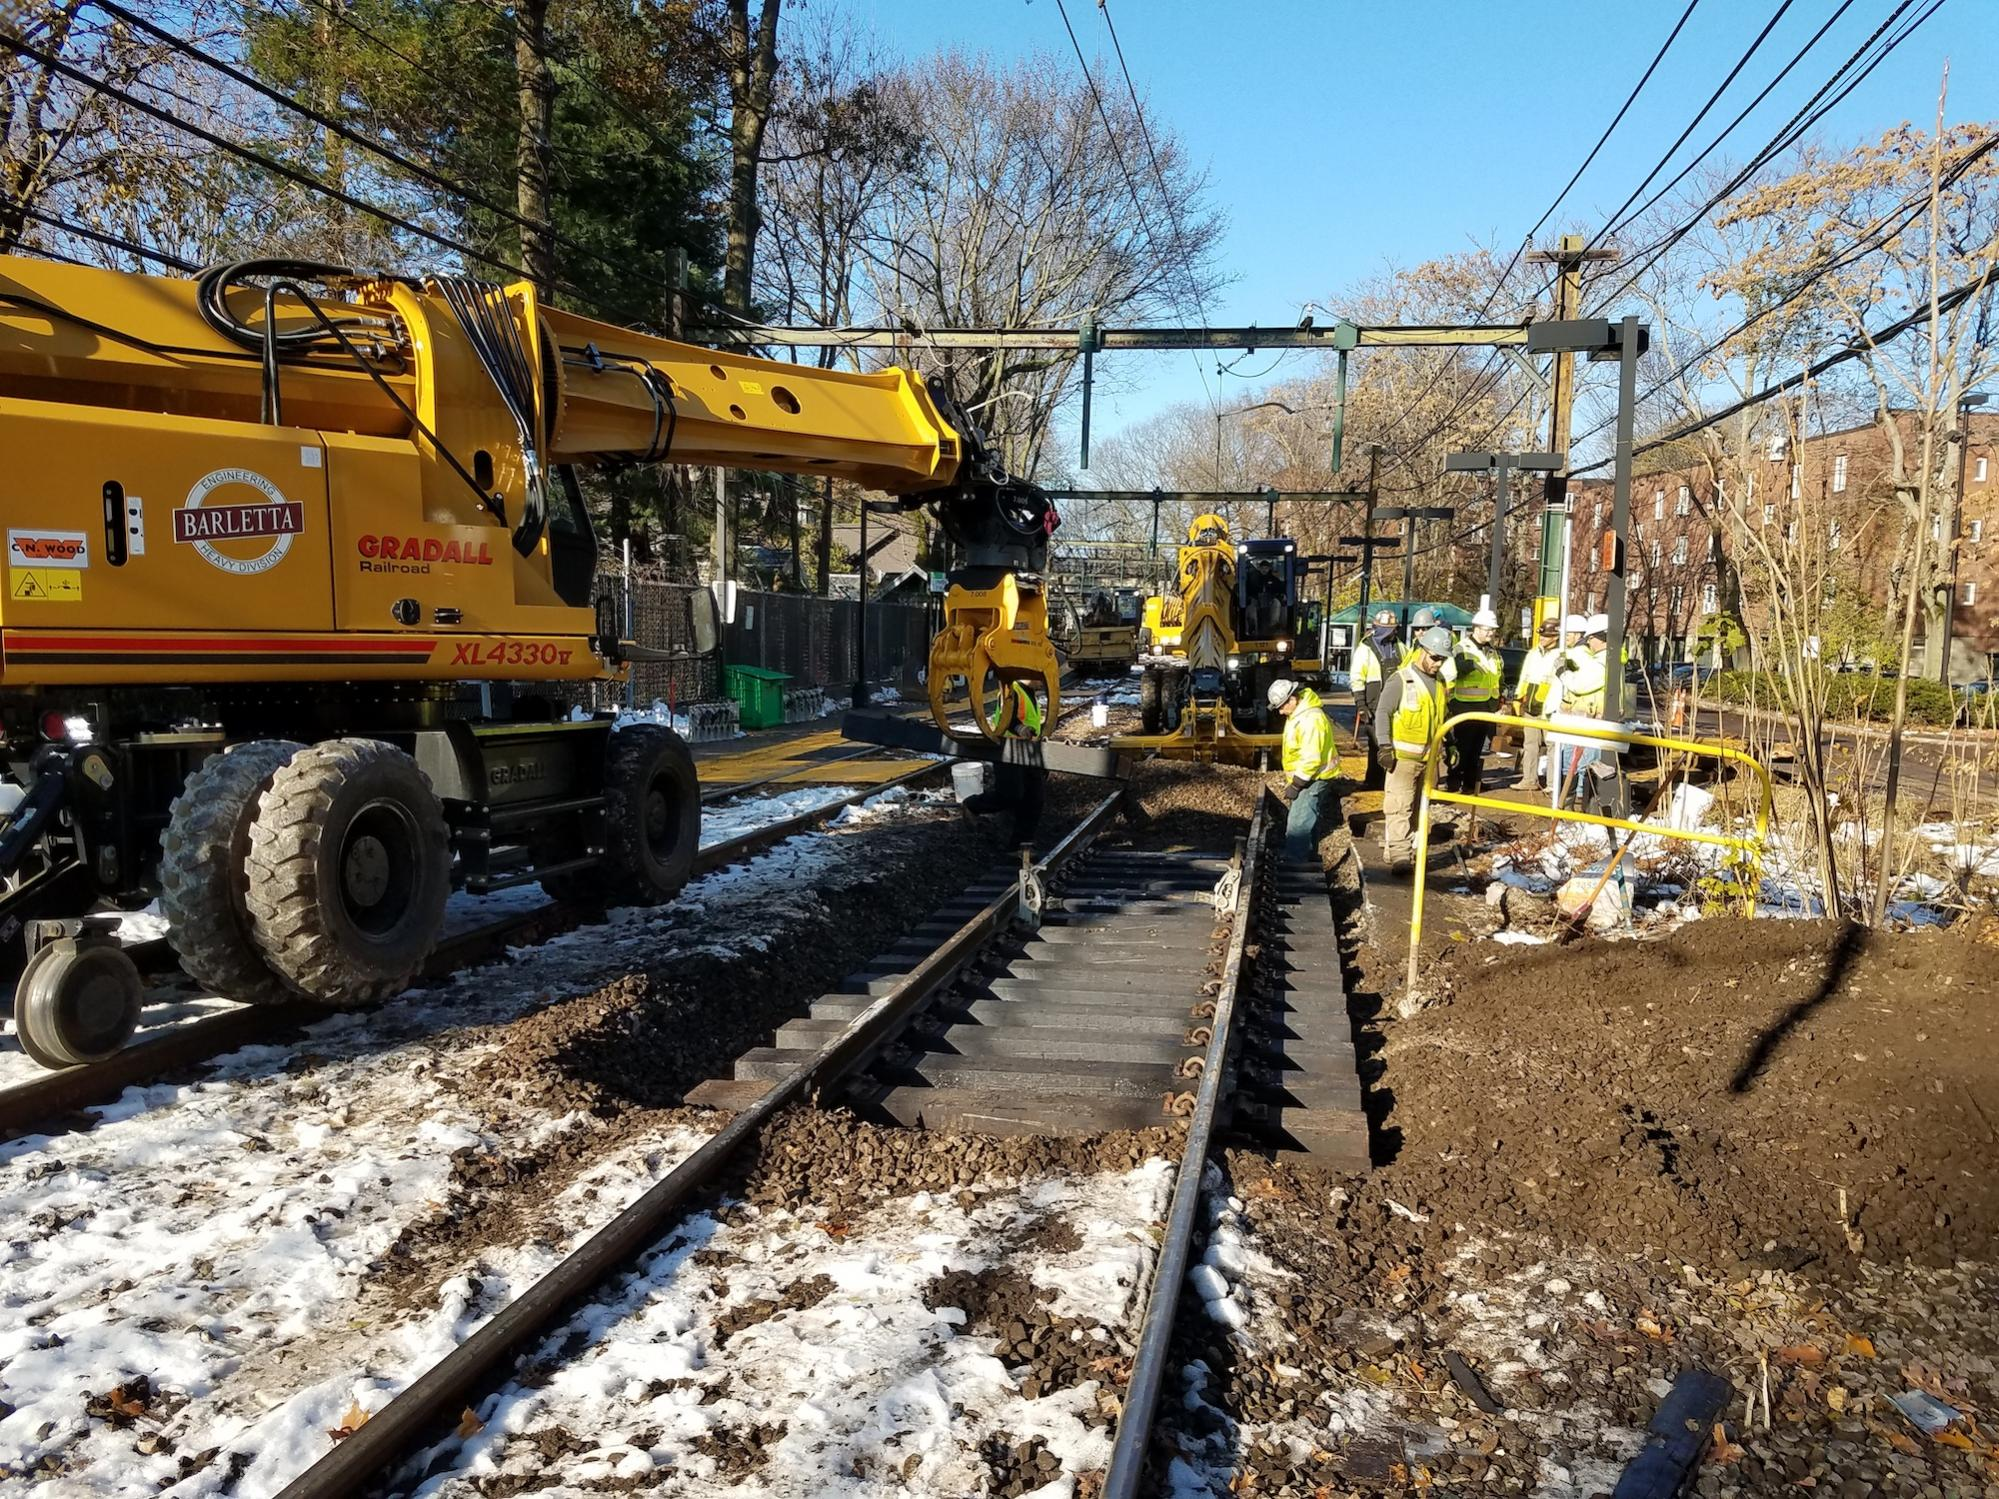 Placing ties. Machinery on the left, a construction crew on the right.